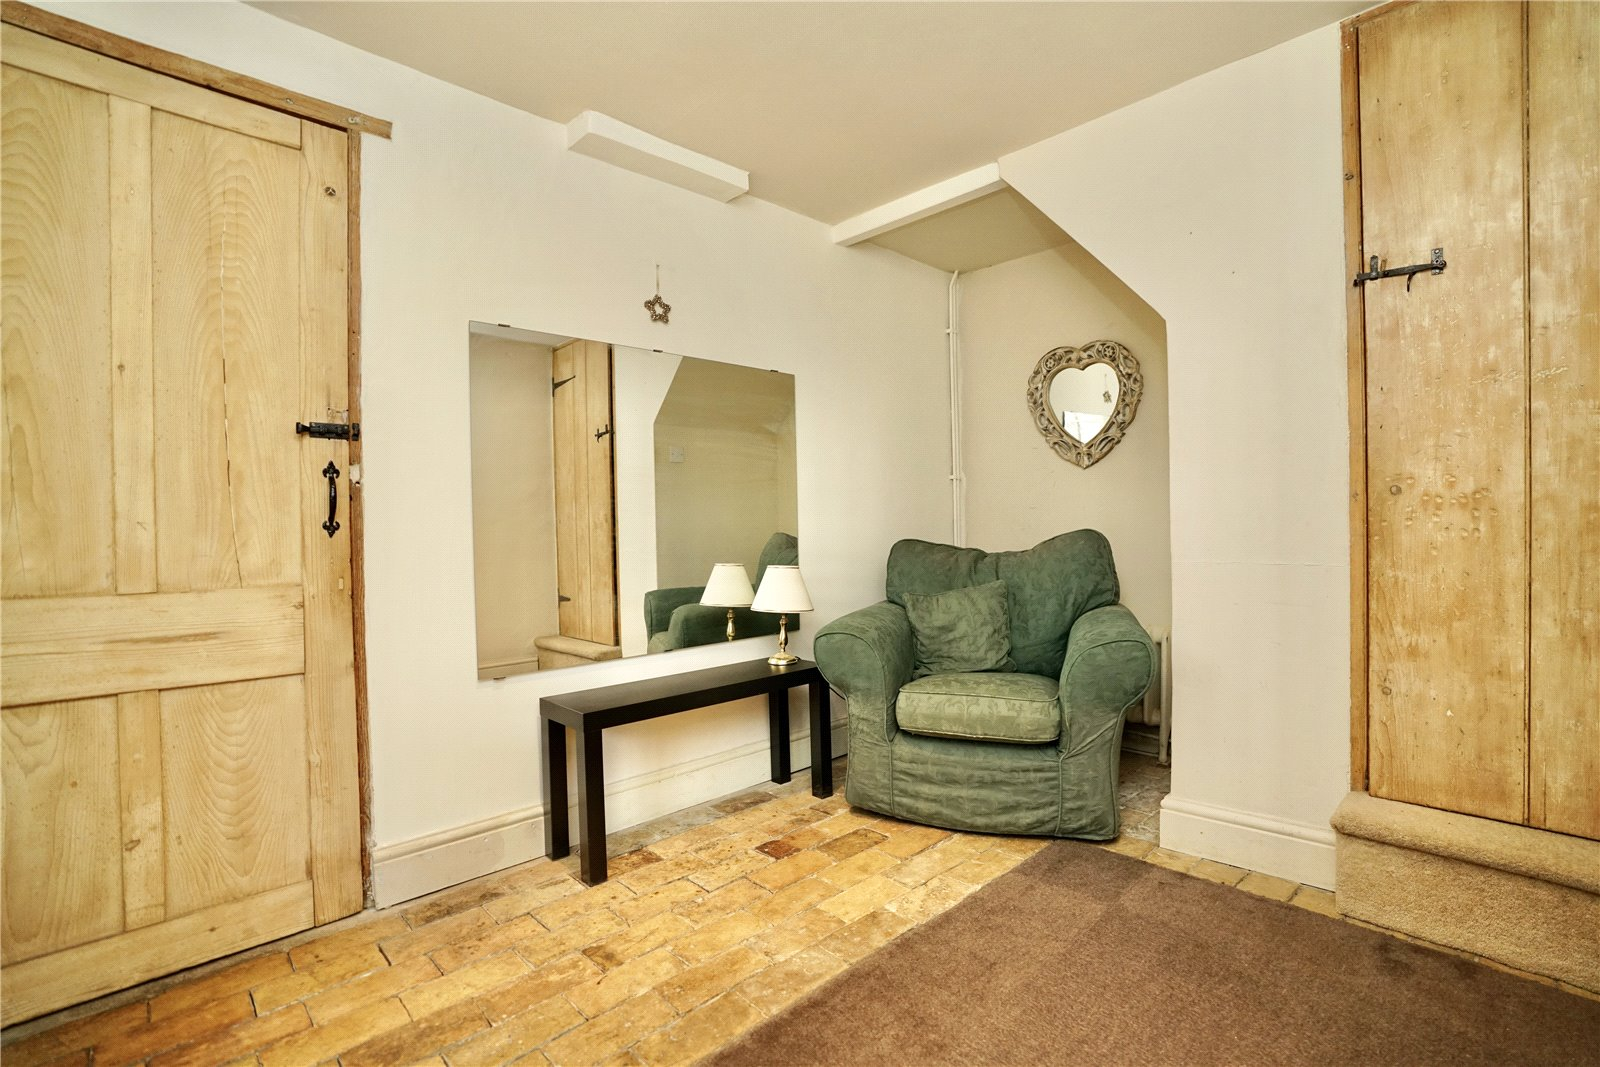 4 bed for sale in The Town, Great Staughton 7